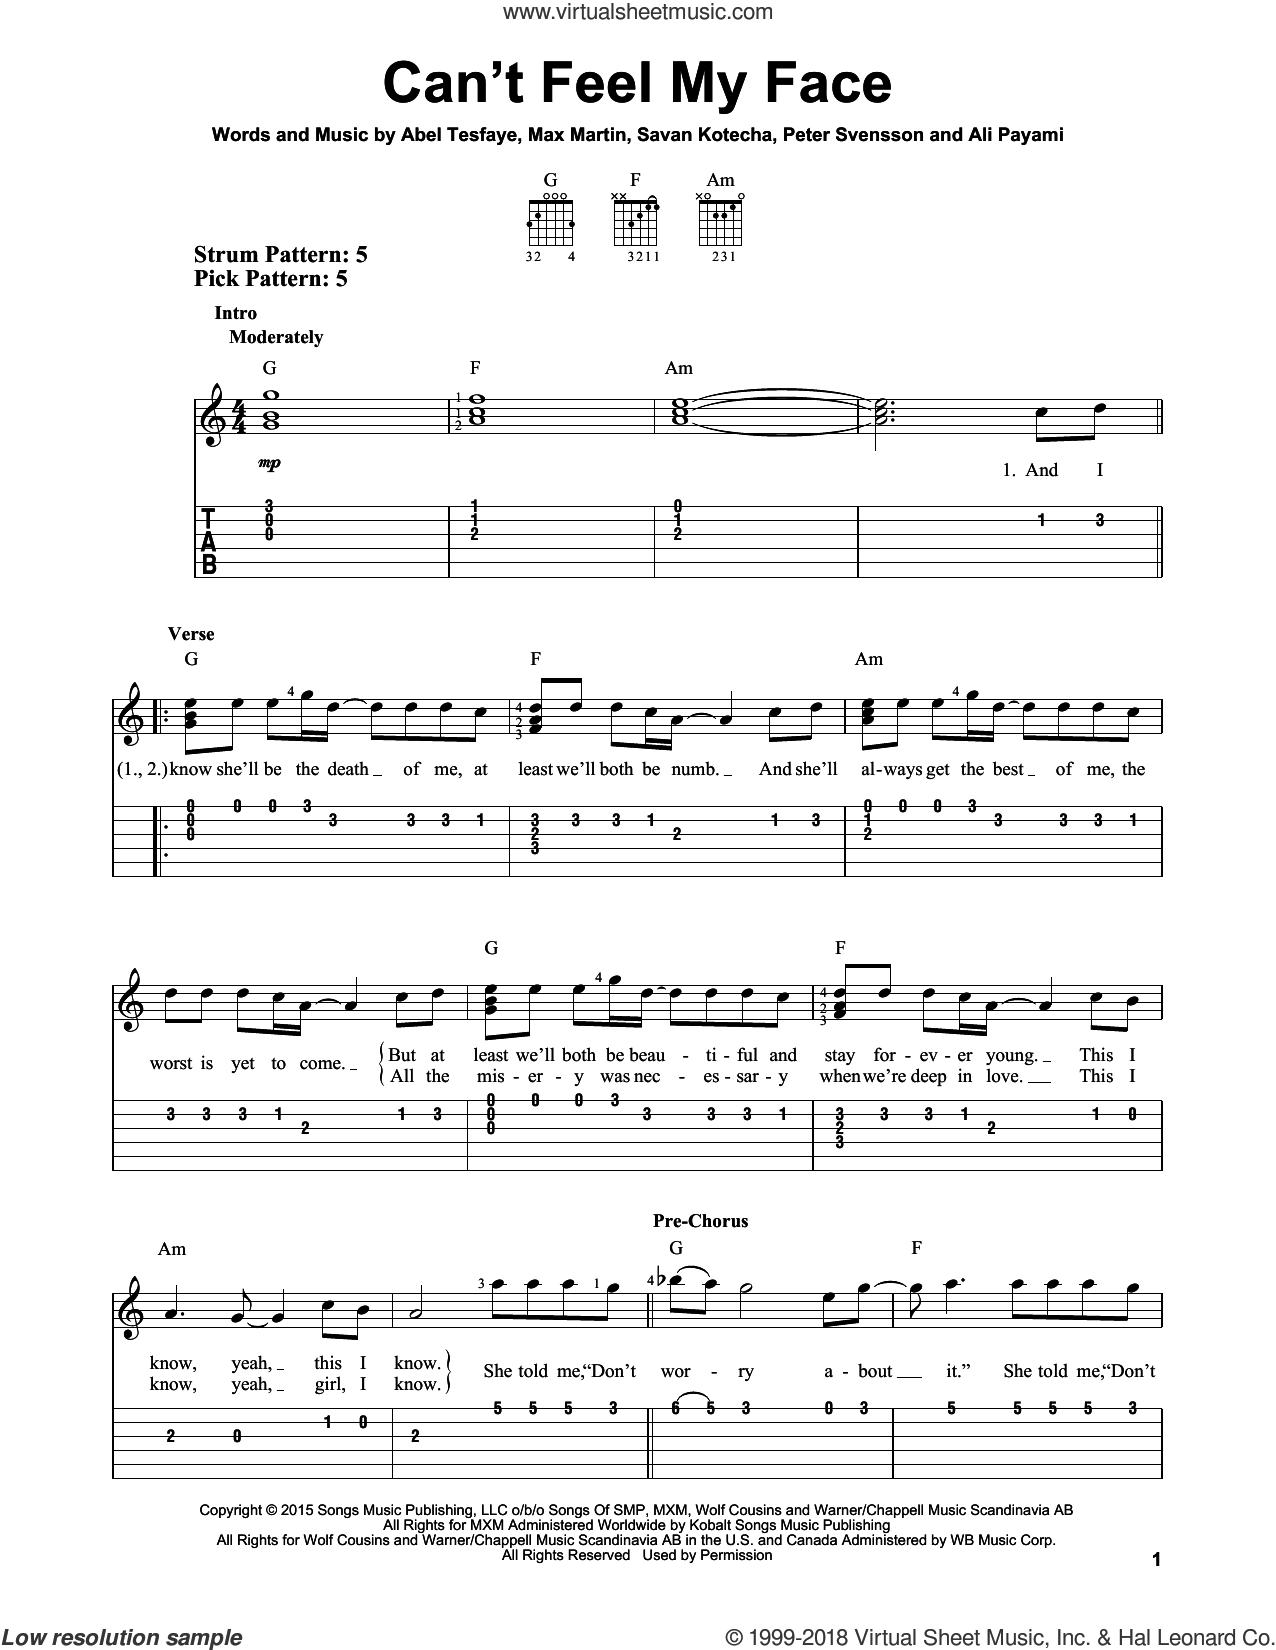 Can't Feel My Face sheet music for guitar solo (easy tablature) by Savan Kotecha, The Weeknd, Ali Payami, Max Martin and Peter Svensson. Score Image Preview.